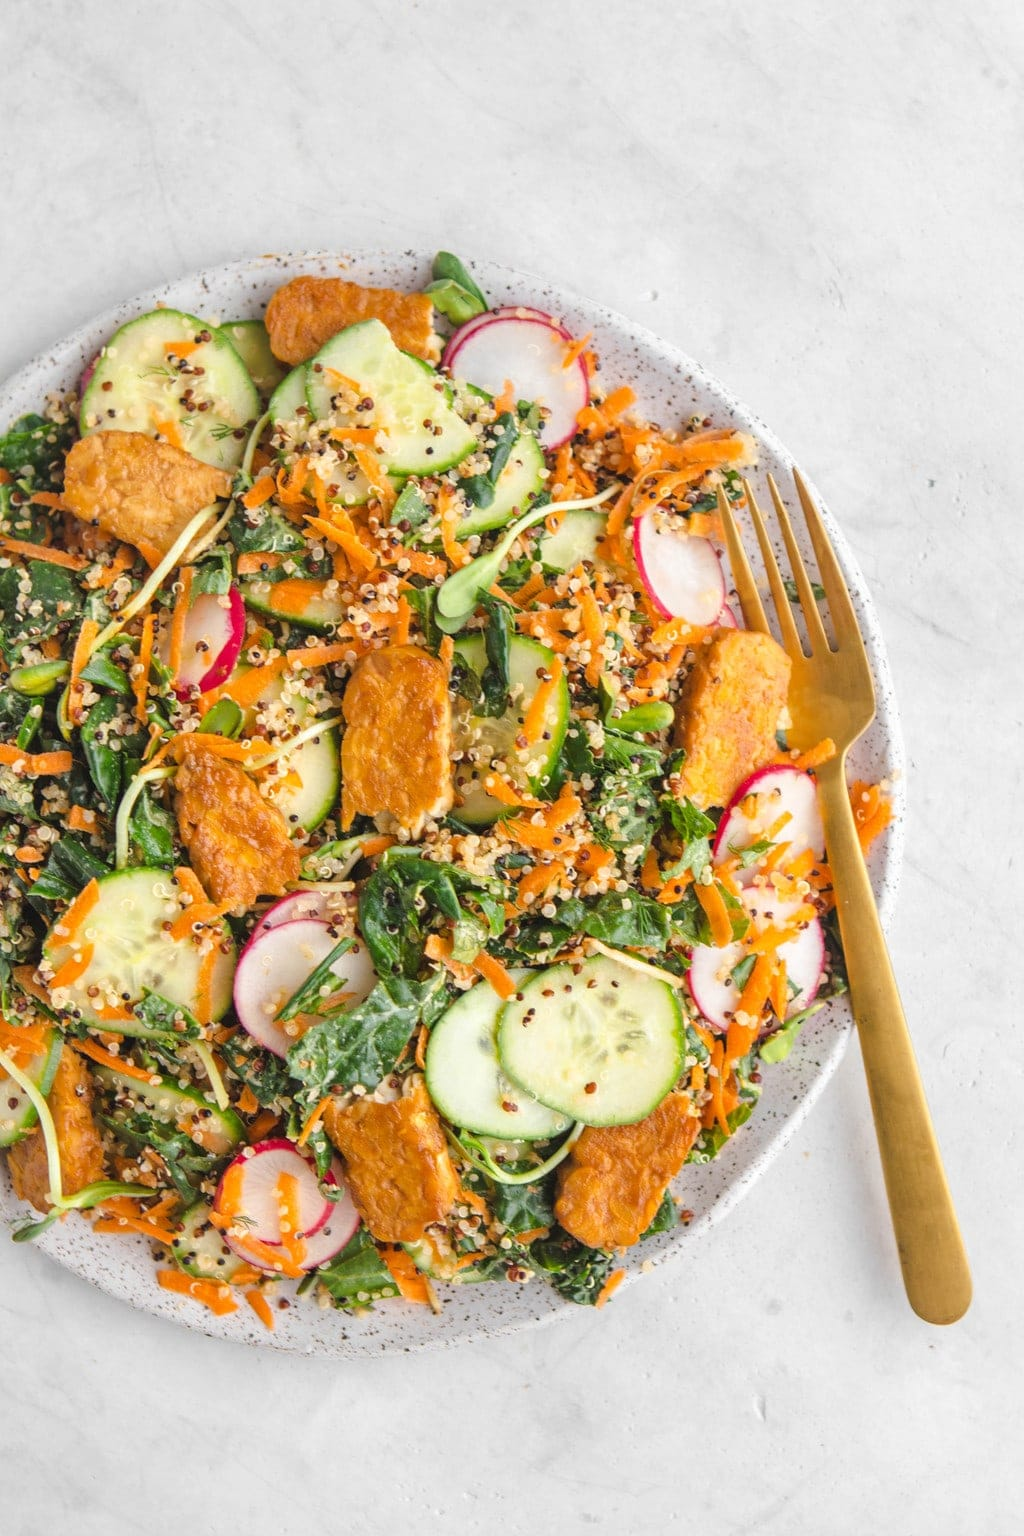 Kale Quinoa Salad with Maple Mustard Tempeh